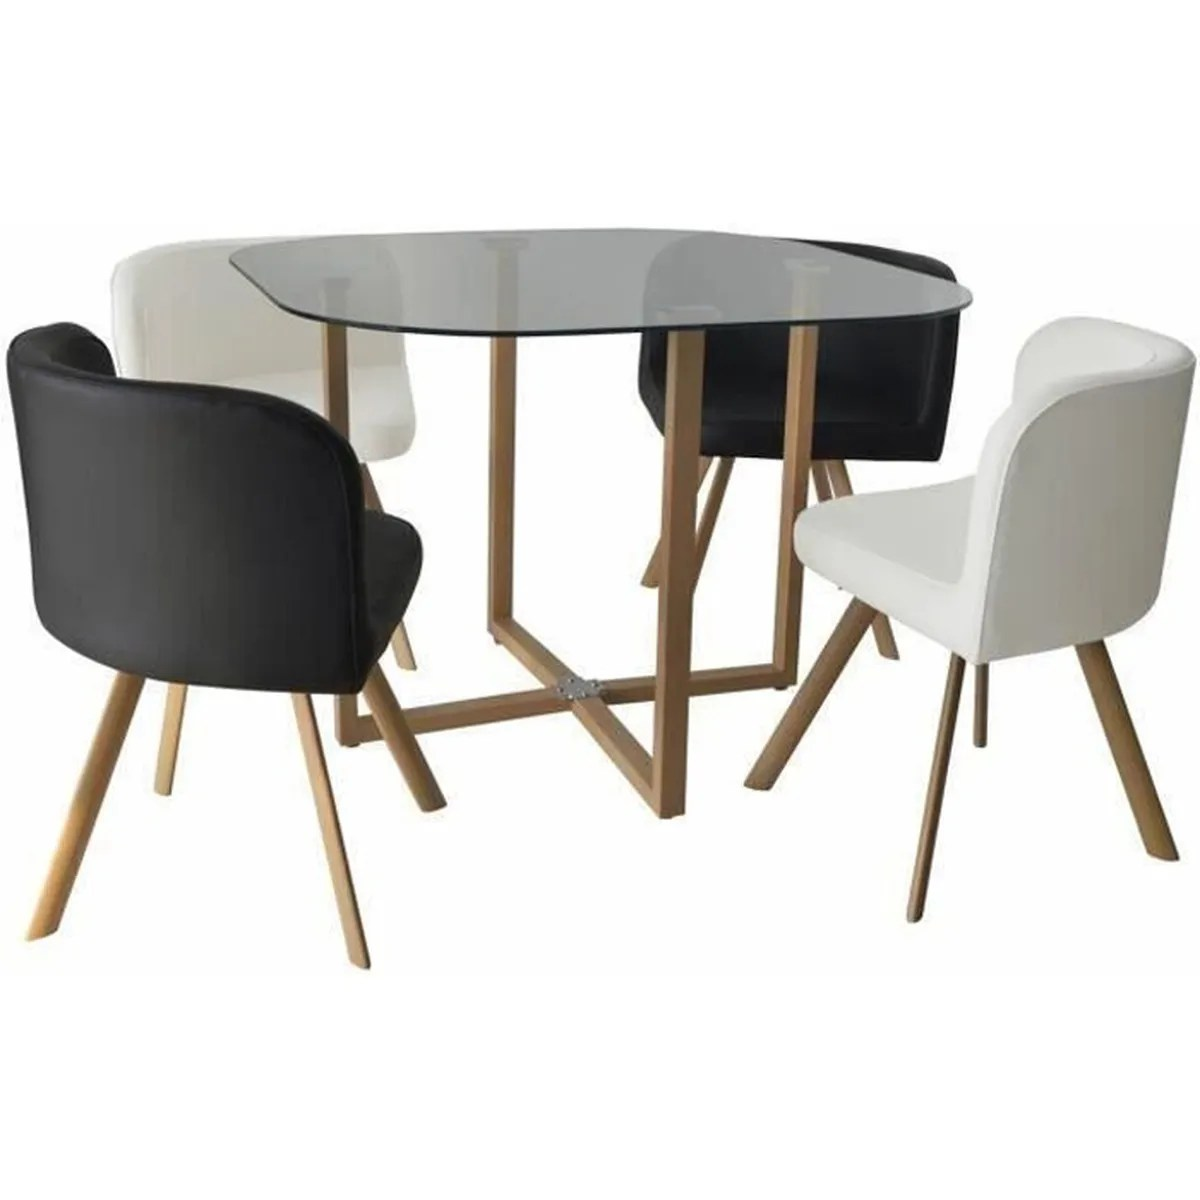 Table Avec Chaise Encastrable Ensemble Table 43 4 Chaises Encastrable Noir Et Blanc Flen